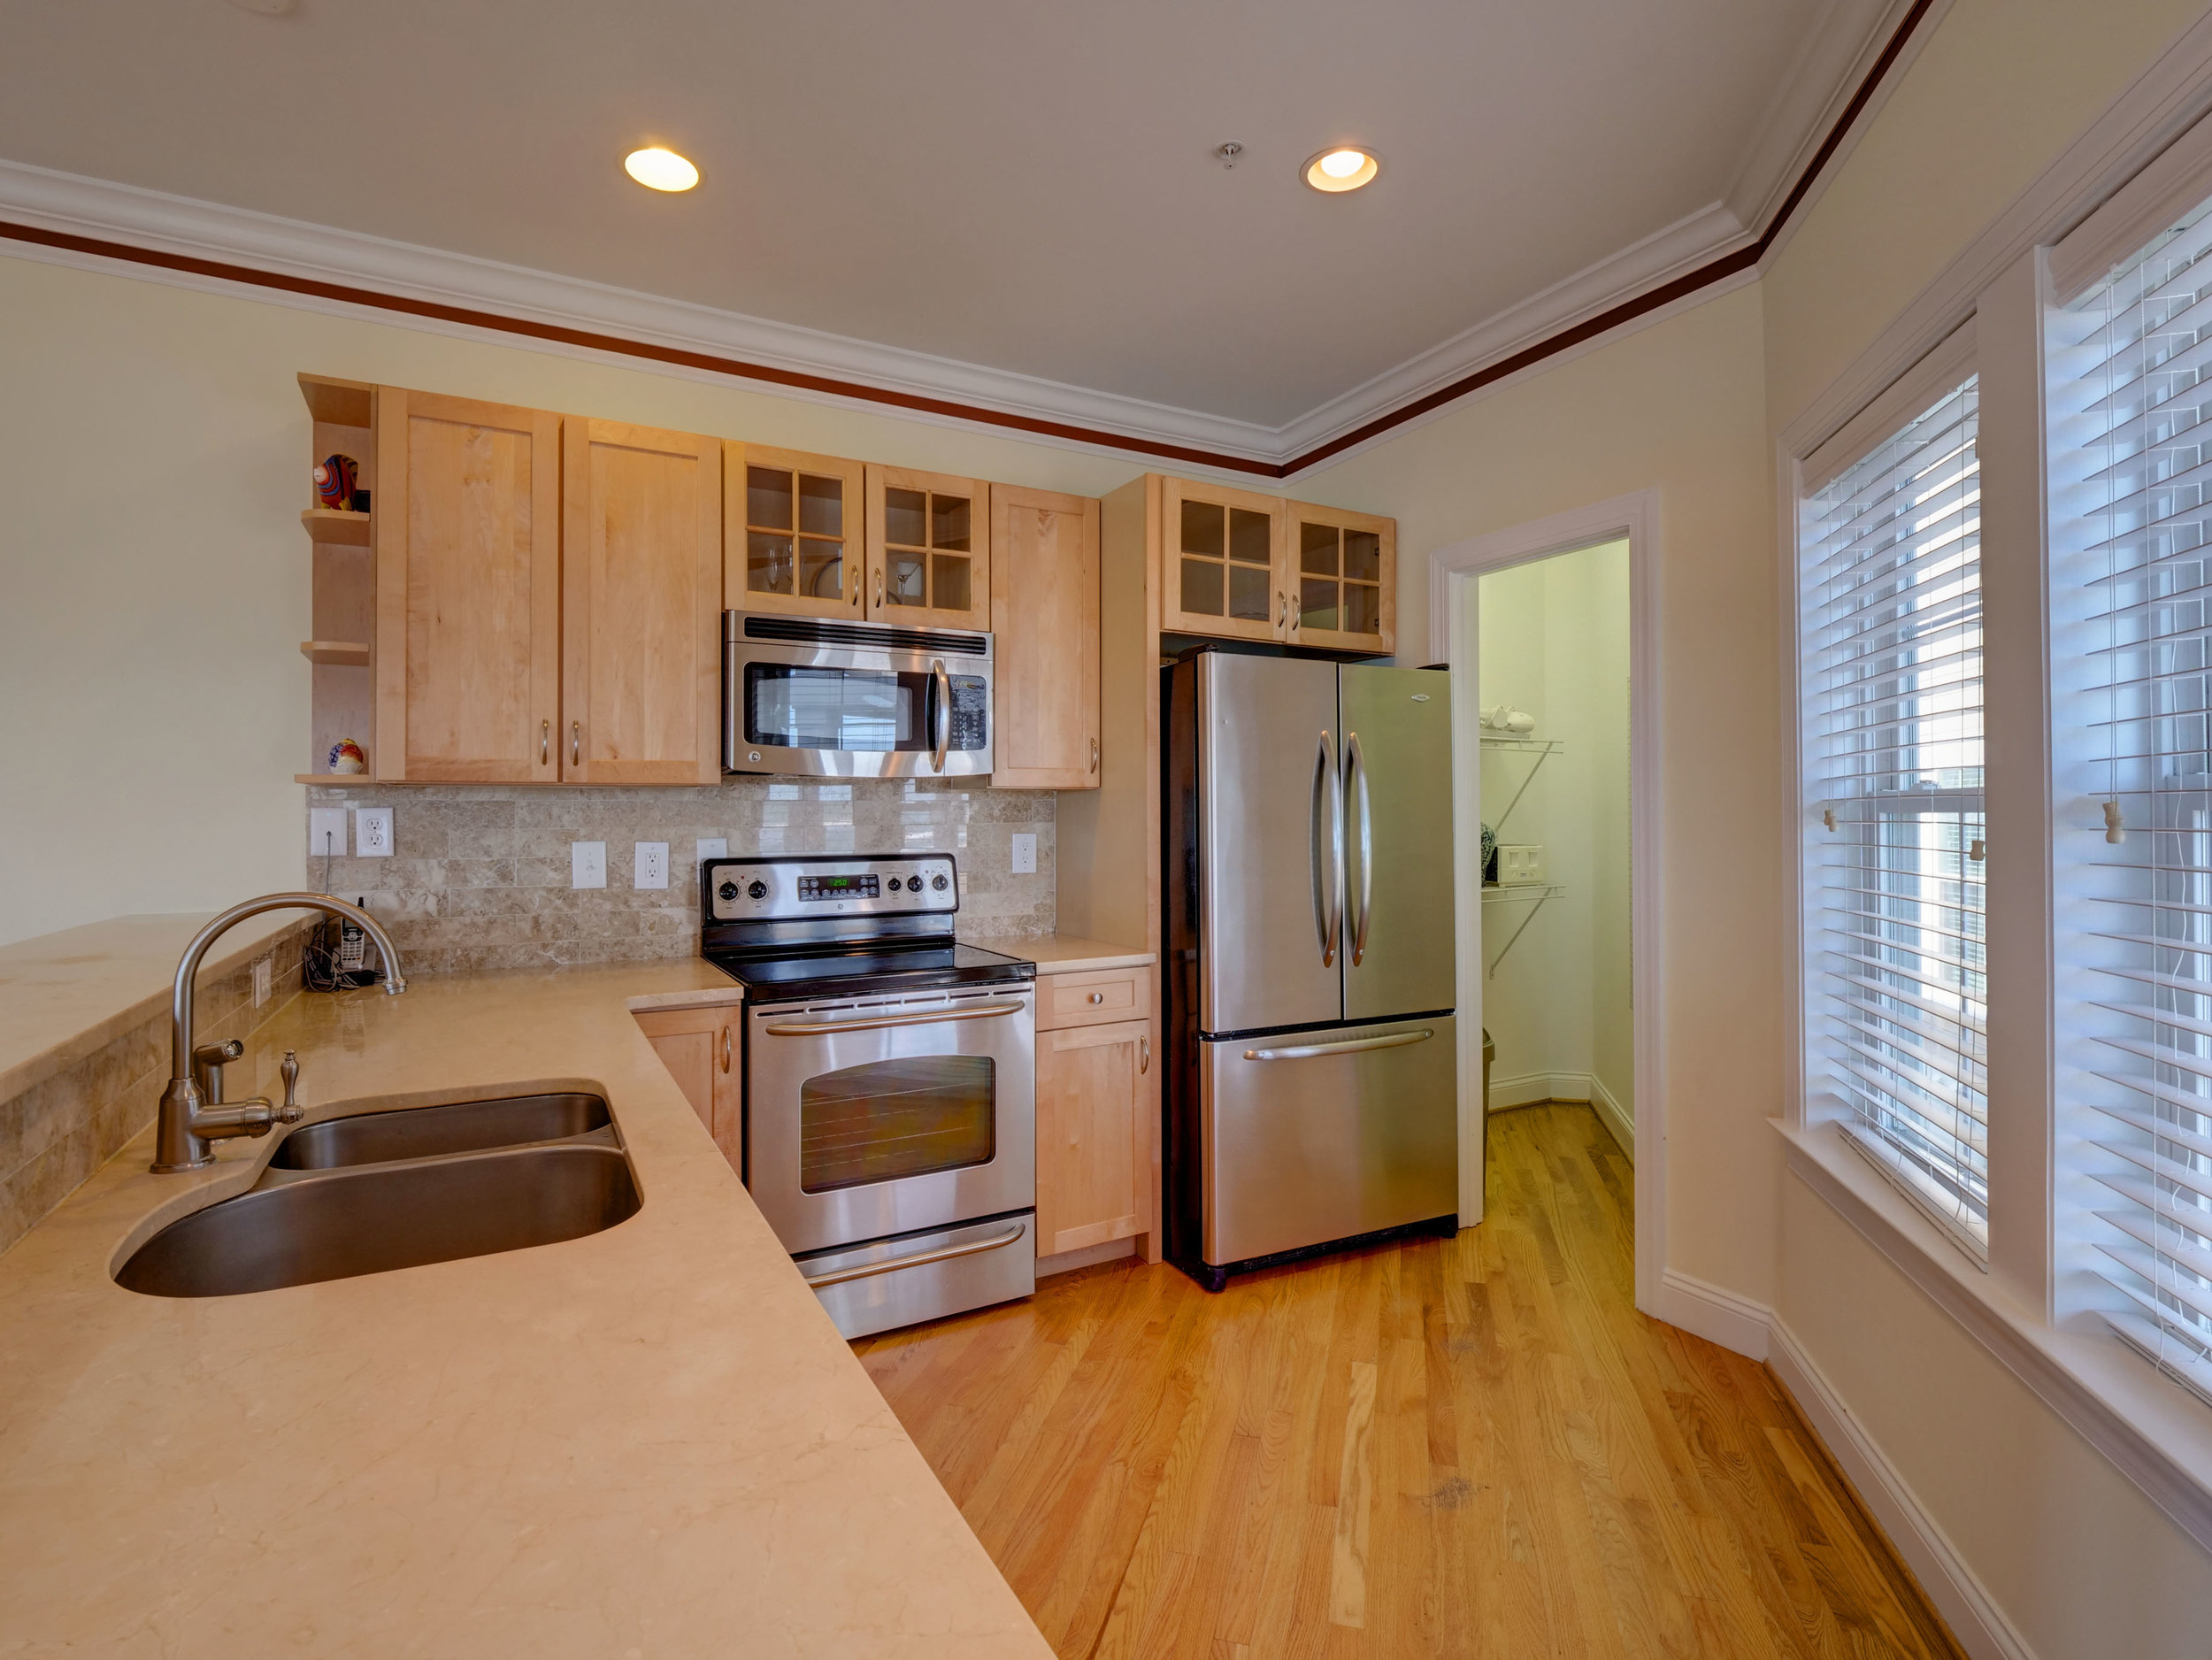 202 N Fort Fisher Blvd Unit 8-print-013-60-Kitchen view 1-3673x2756-300dpi.jpg